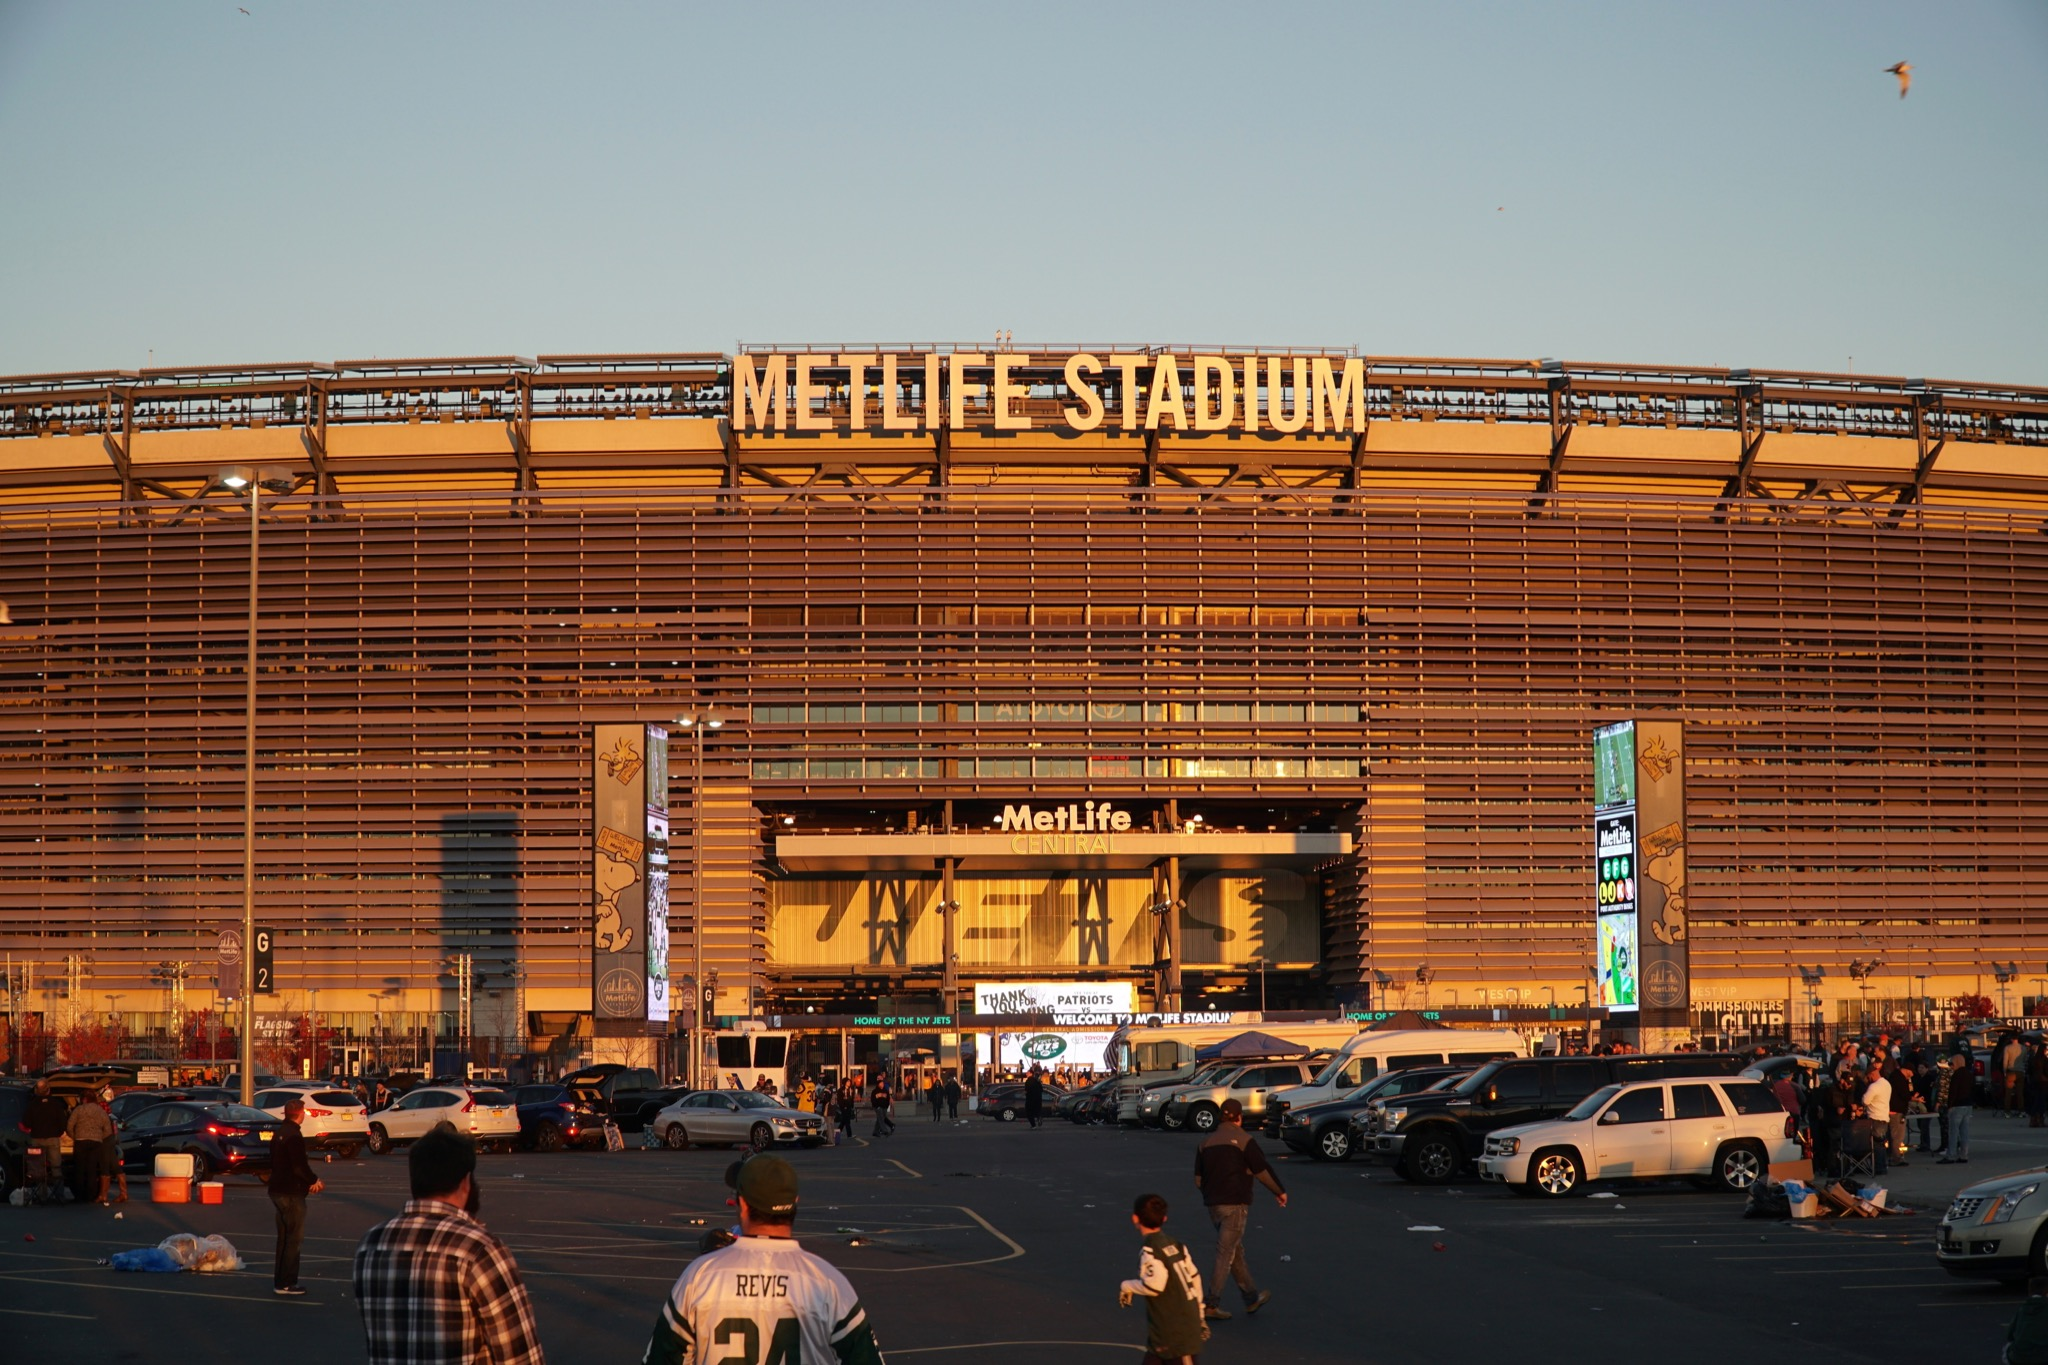 East Rutherford, New Jersey - November 2016: Metlife Stadium at sunset golden hour before New York Jets football game as fans tailgate before enter arena - Image